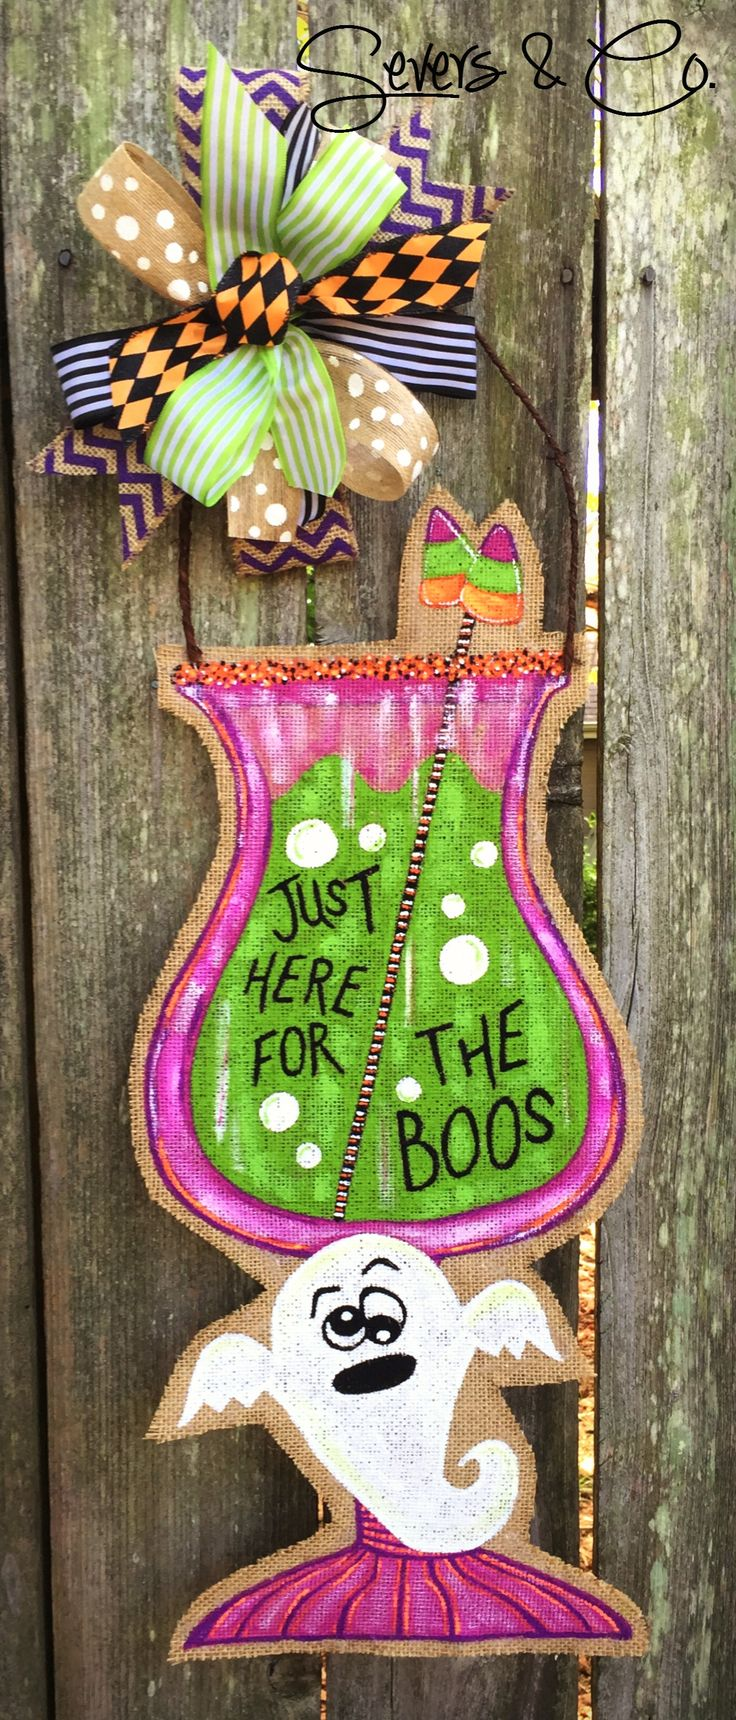 Brand new for Halloween 2016!!  Just Here for the Boos burlap door hanger by Severs & Co.  $40+shipping.